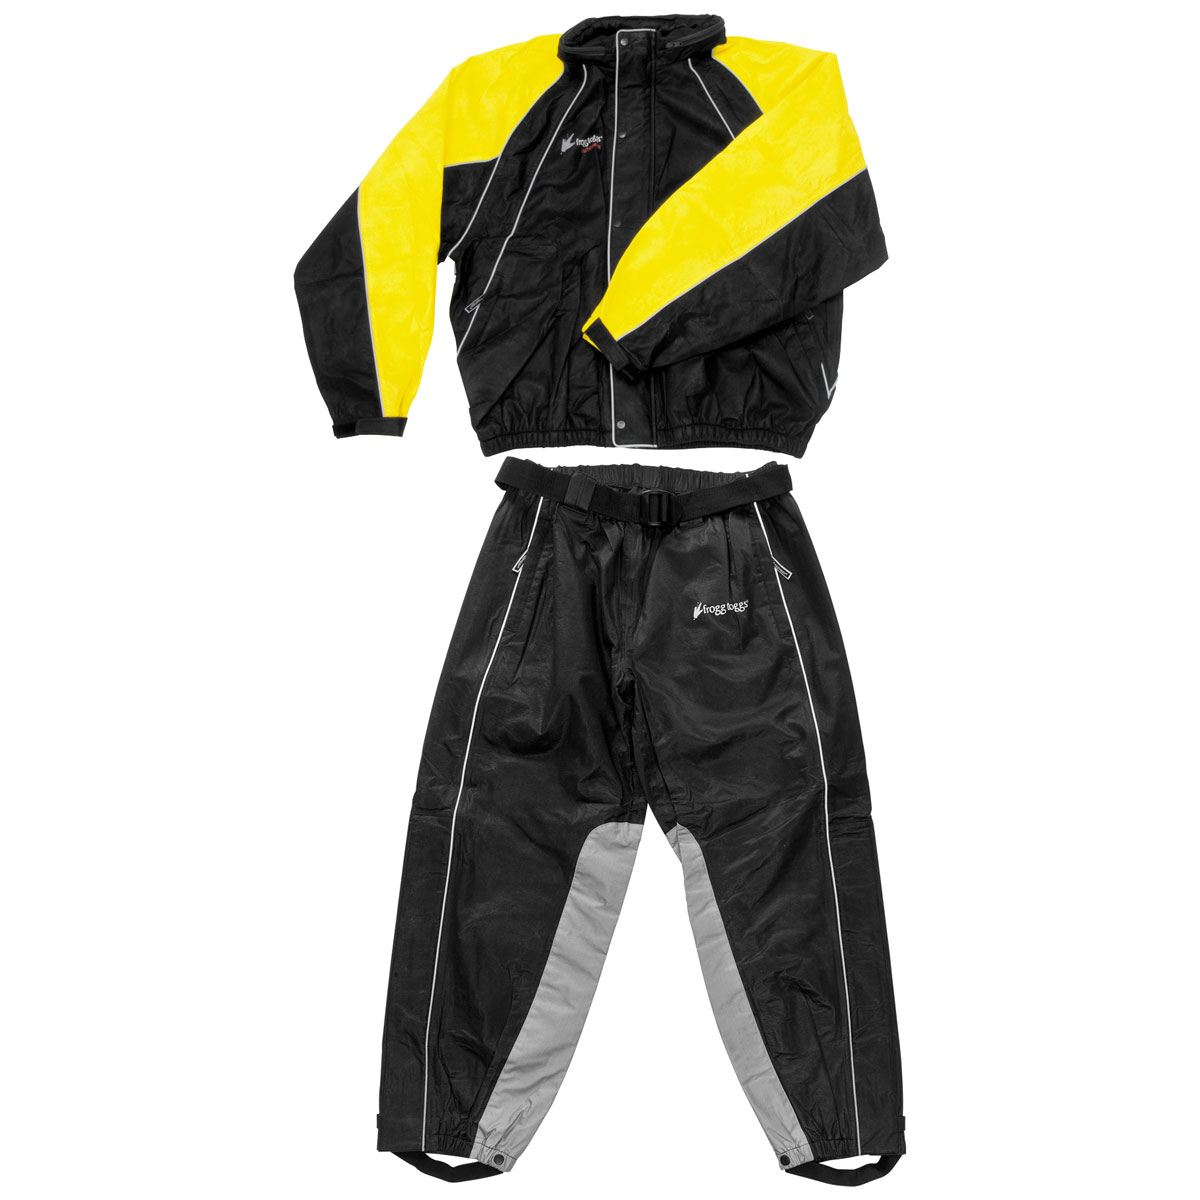 Frogg Toggs Hogg Togg Black/ Yellow Rain Suit with Heat Resistant Leg Liners